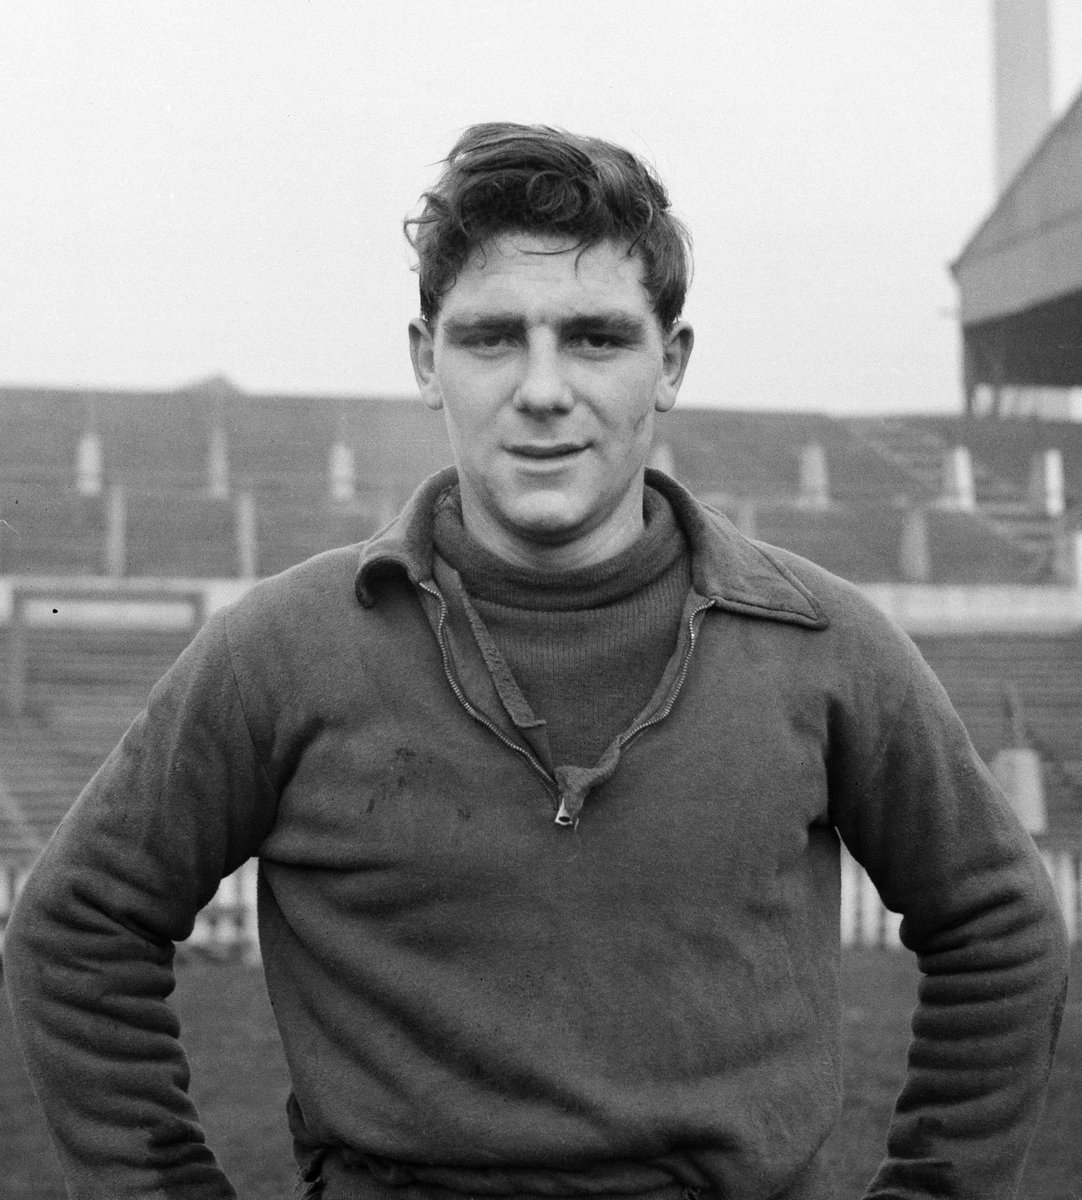 We're remembering the late Duncan Edwards, who tragically passed away from injuries sustained in the Munich Air Disaster on this day in 1958.